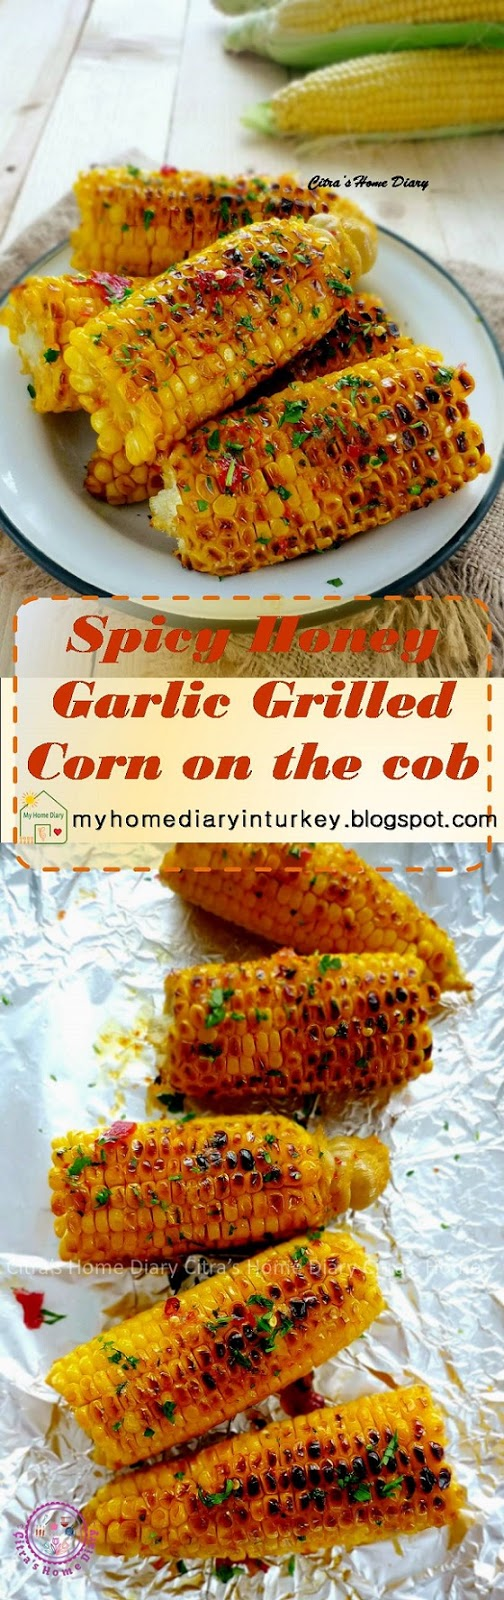 Grilled Corn On The Cob America S Test Kitchen